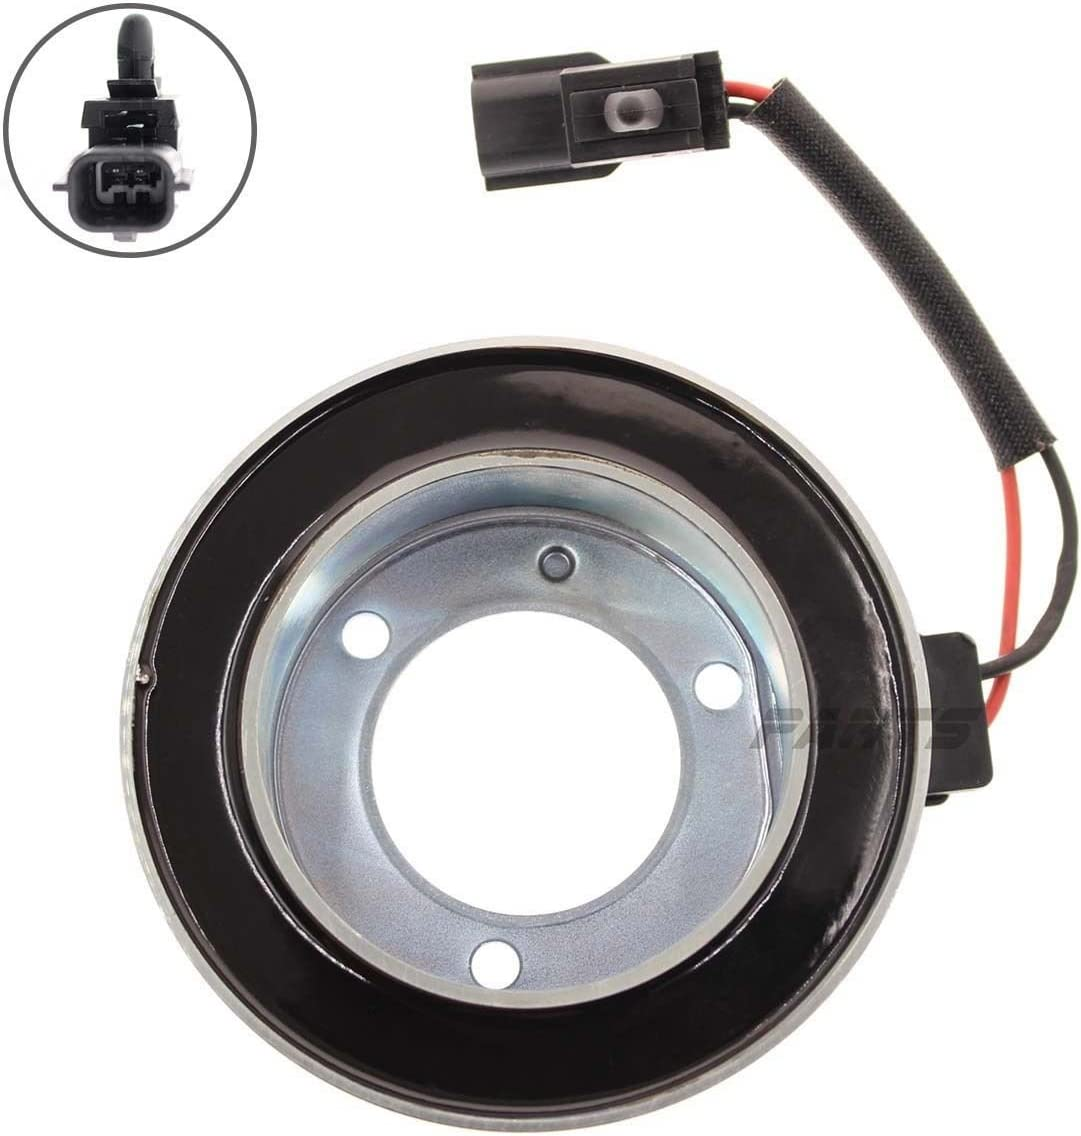 A//C AC Air Con Compressor Electromagnetic Clutch Coil for Nissan Murano DKS17D